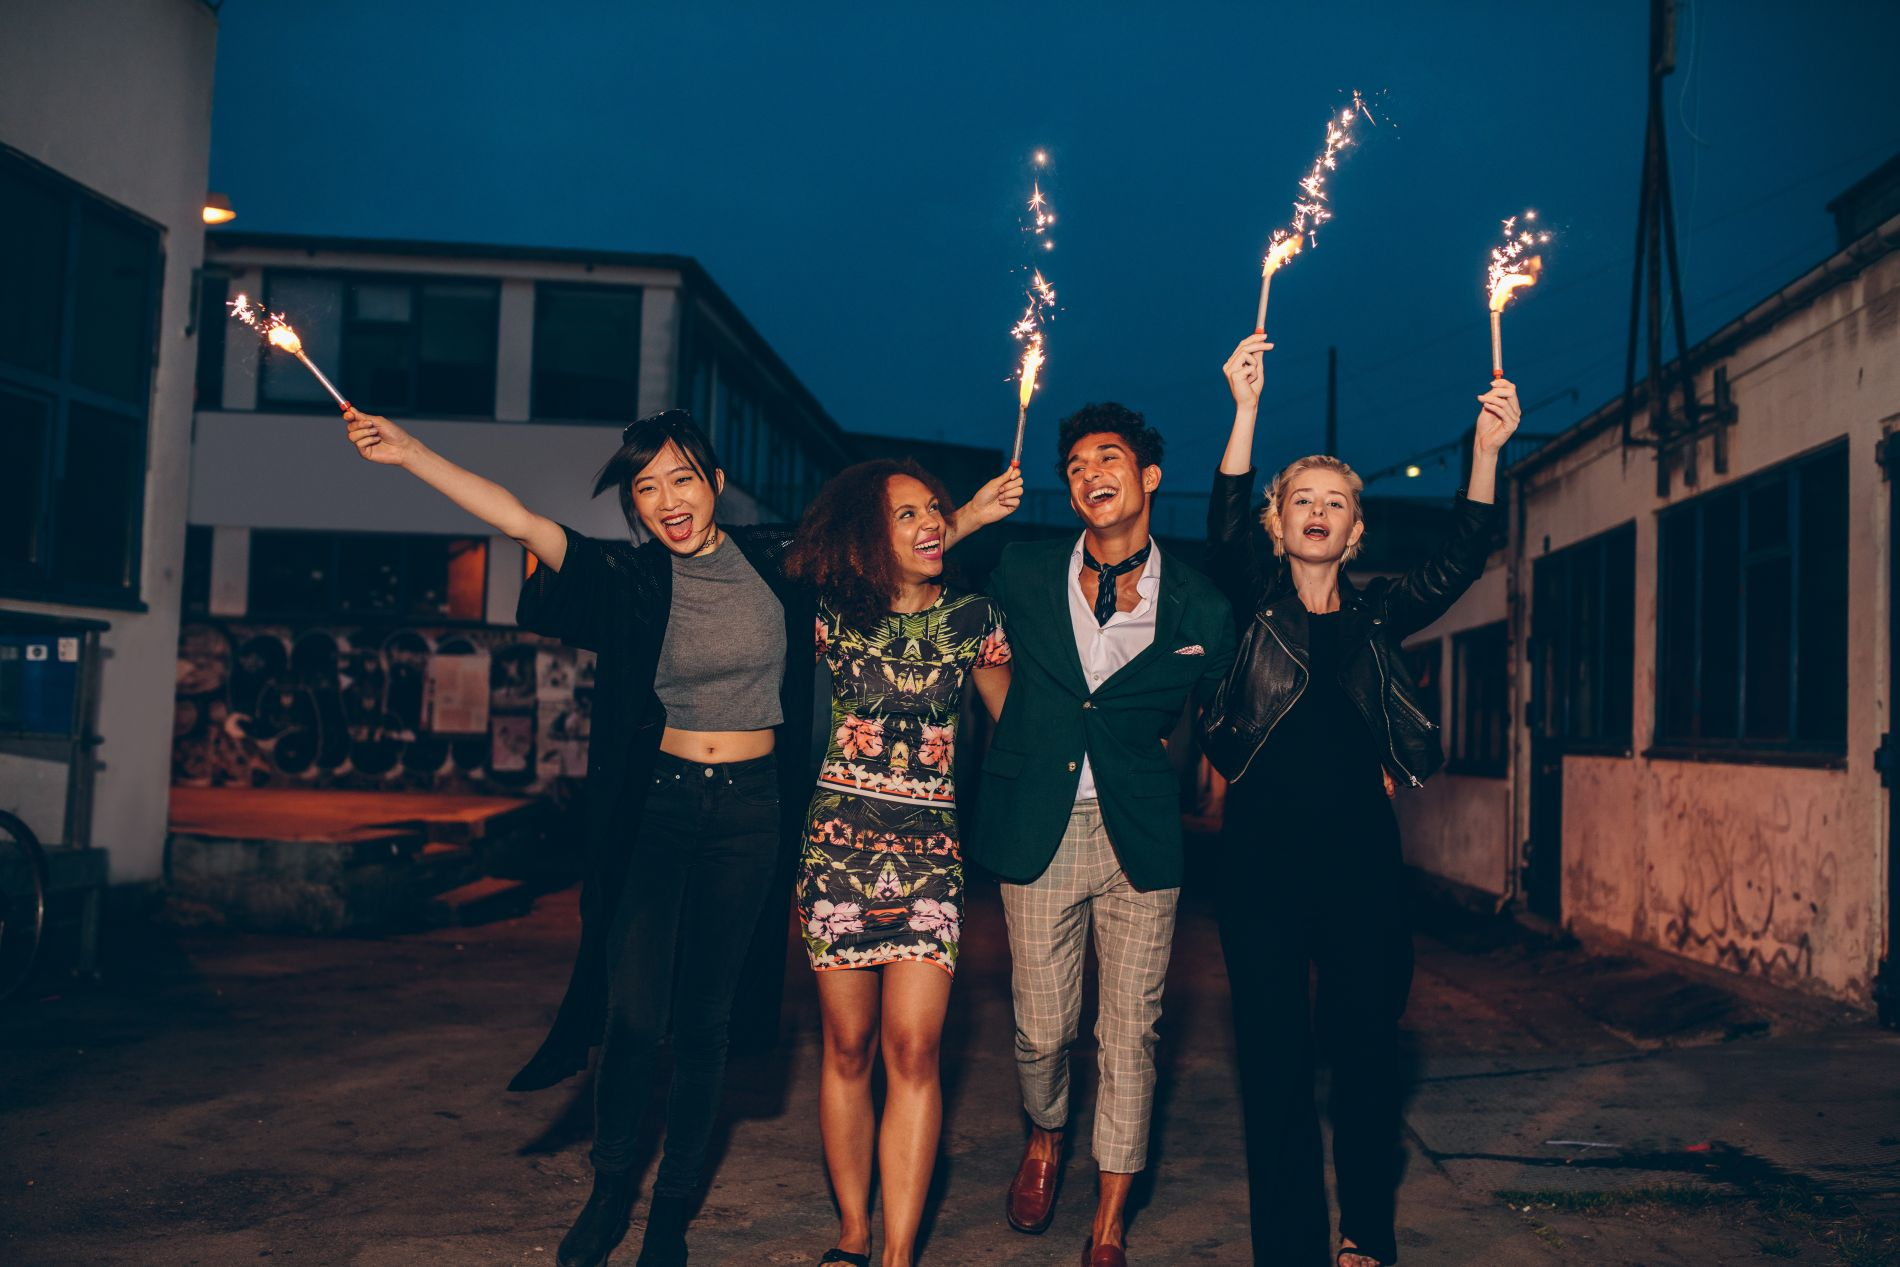 friends-enjoying-nighttime-party-with-sparklers-in-PMLENXC.jpg